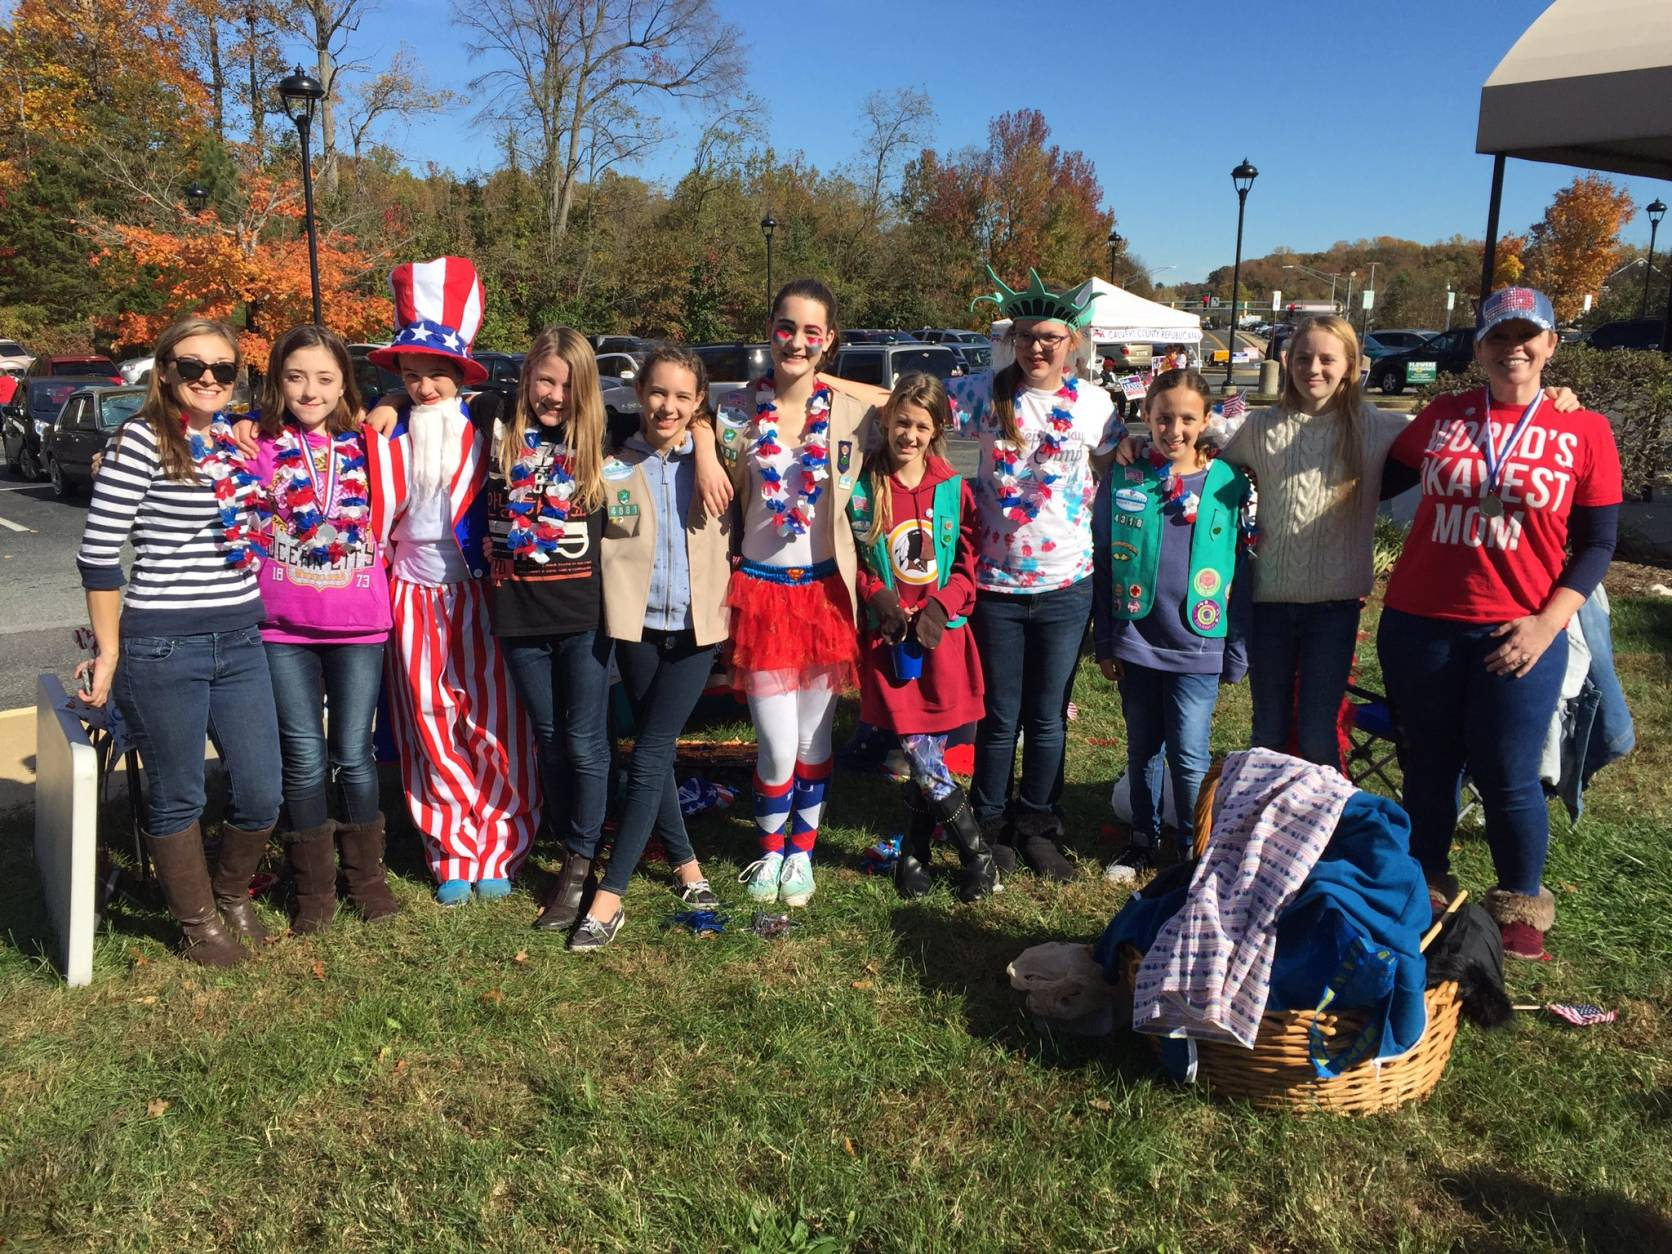 Girl Scouts sell sweet treats outside the polling place in Calvert County, Md. (WTOP/Michelle Basch)